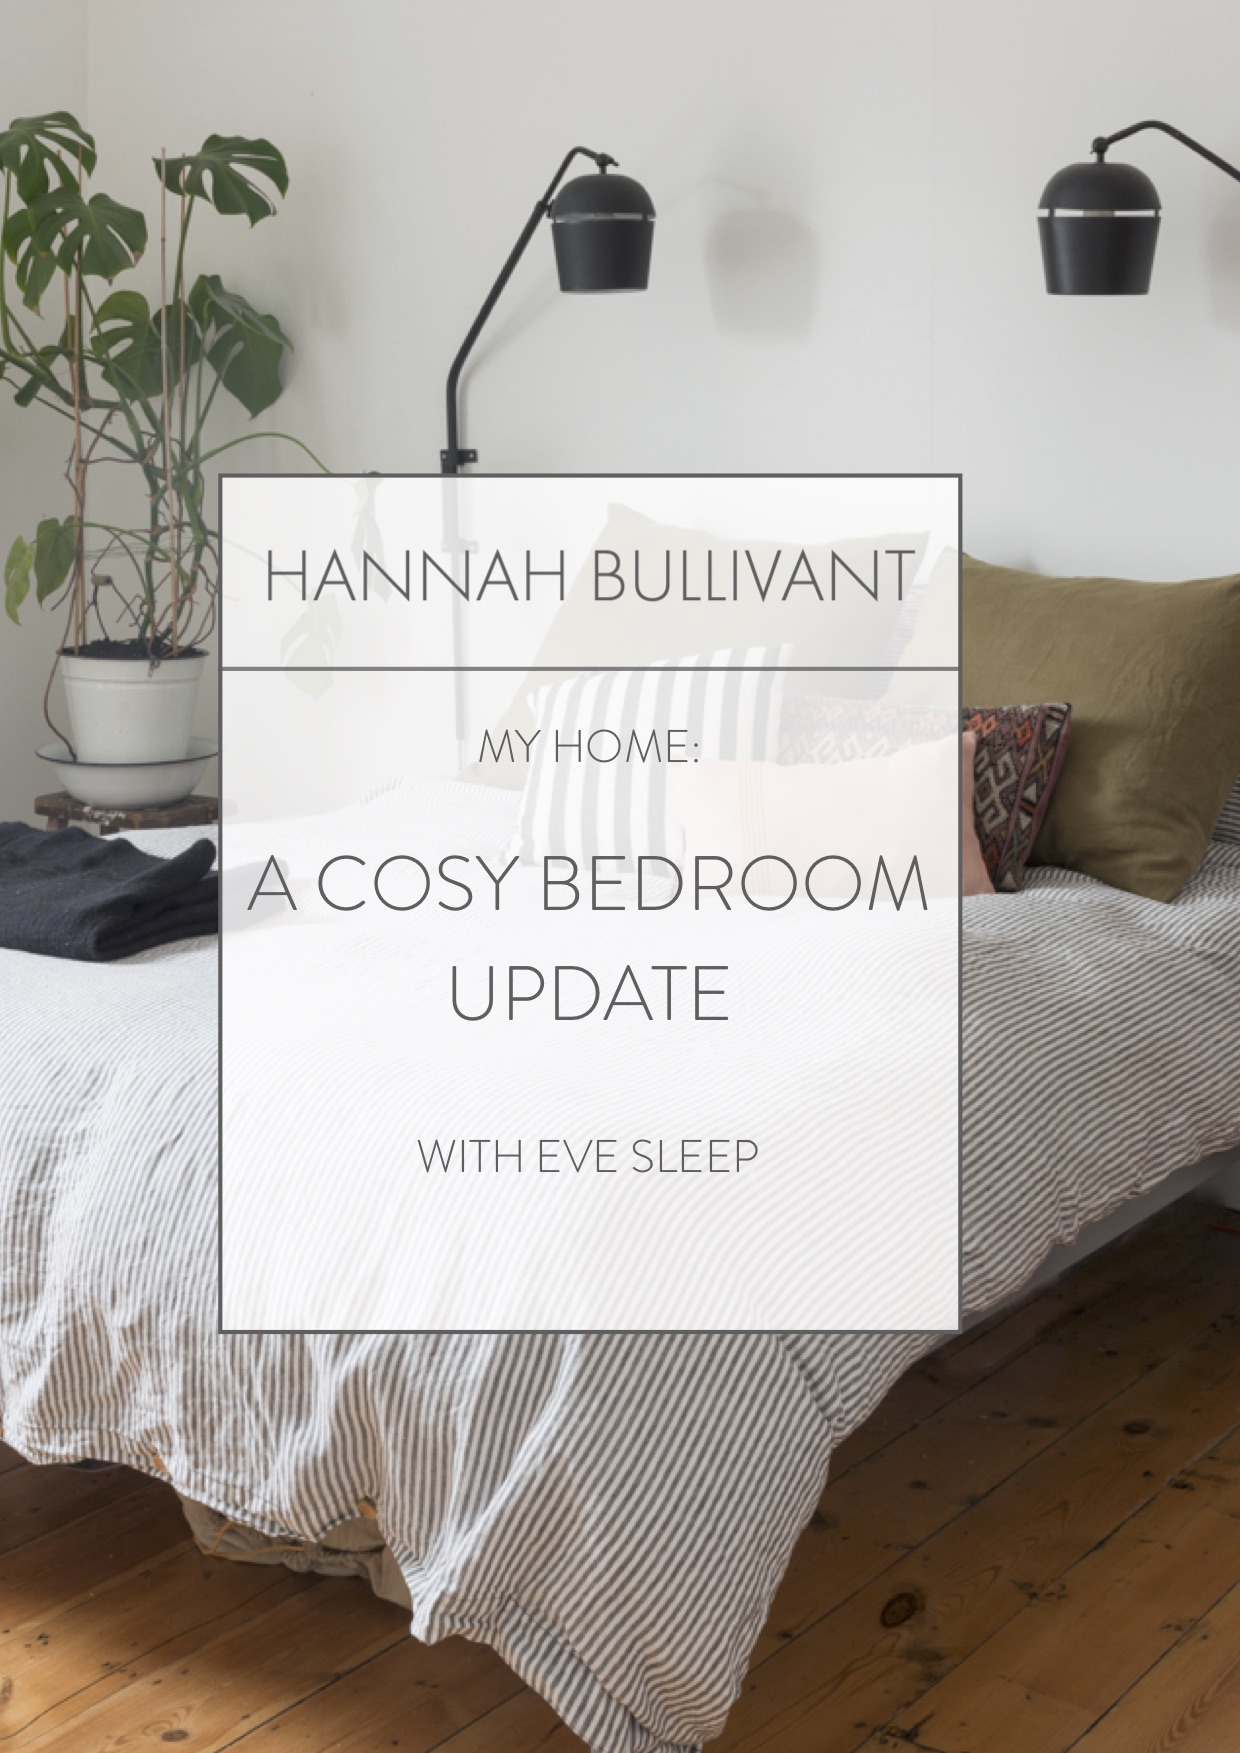 Bedroom update with Eve Sleep | HannahBullivant.com